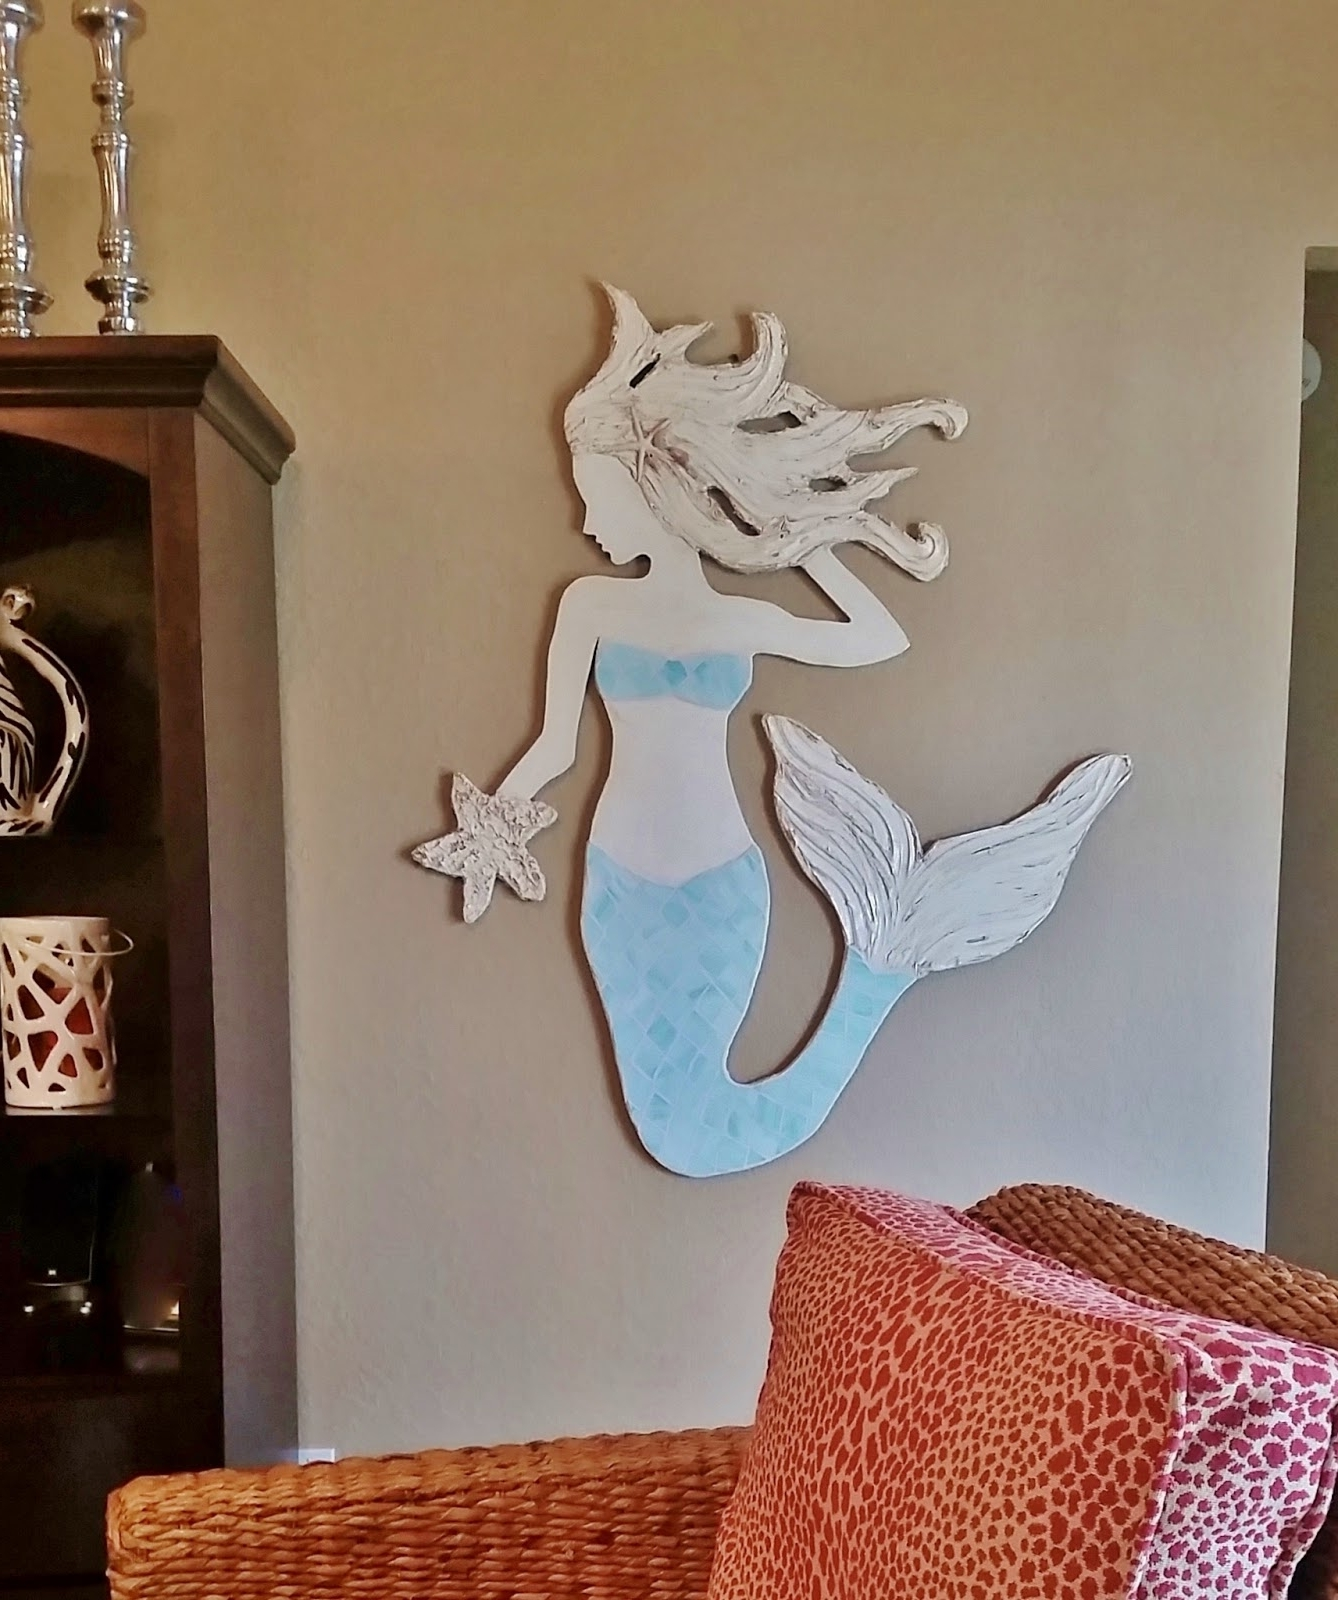 Most Current Mermaid Wood Wall Art With Regard To Wooden Mermaid Wall Decor – Unac (View 6 of 15)